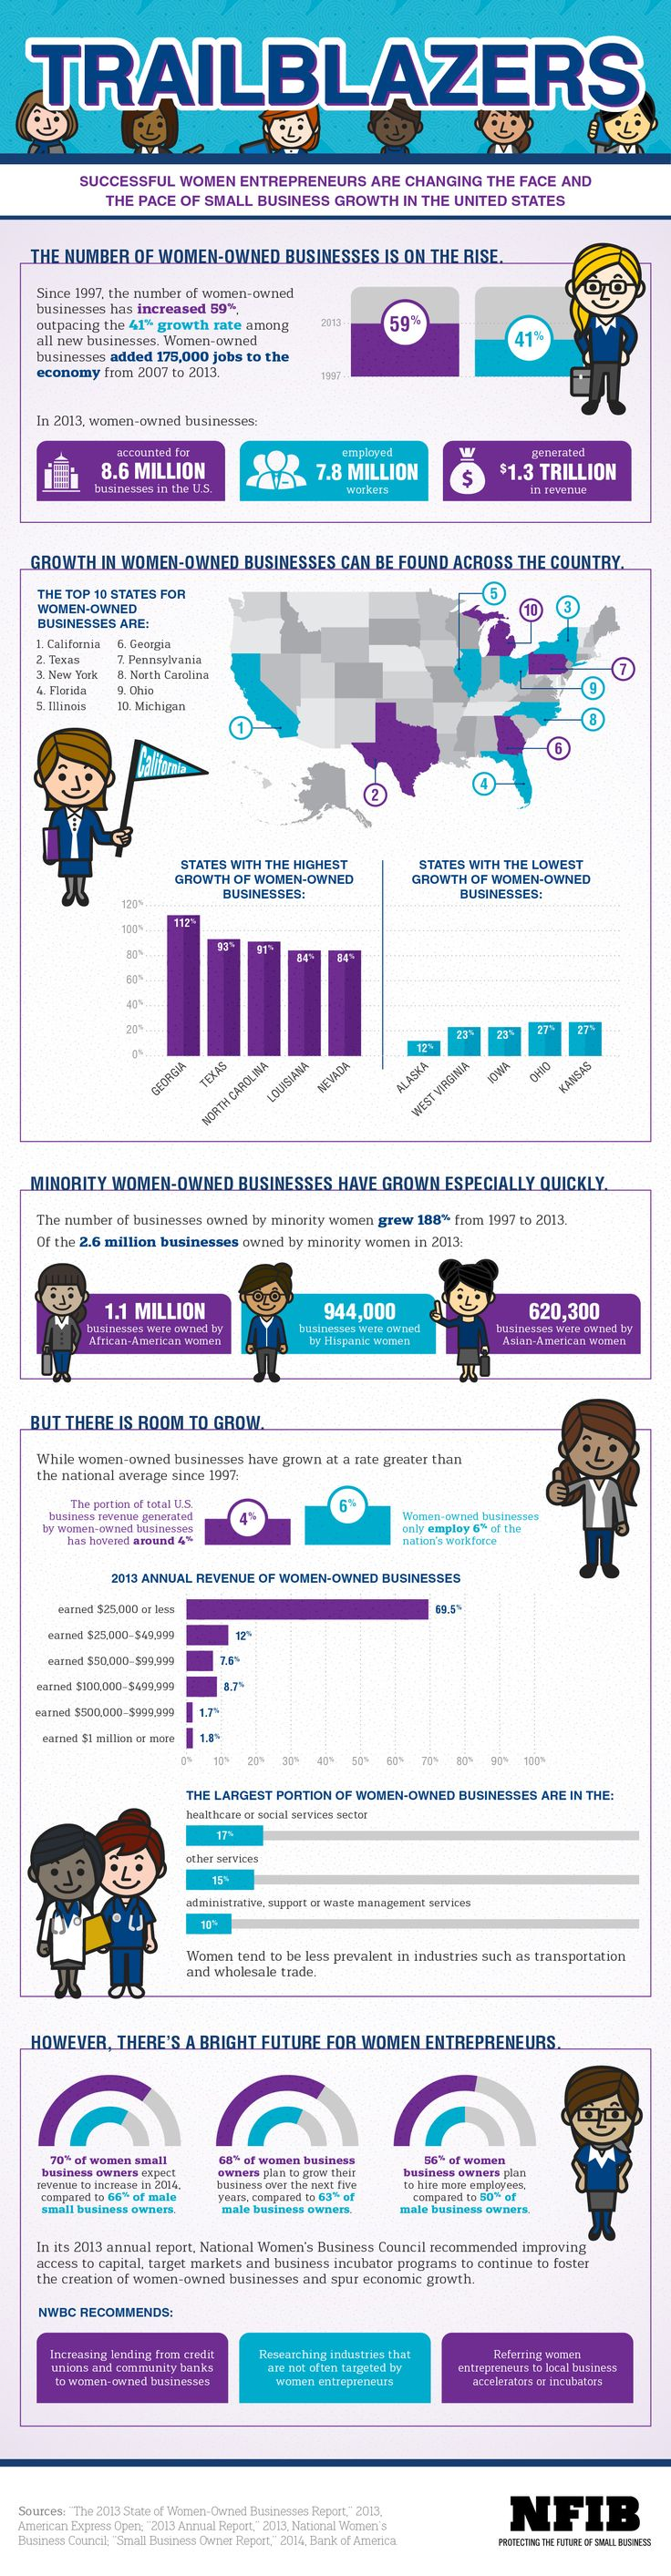 The State of Women-Owned Businesses | NFIB: Womenown Womenshould, Small Business, The Face, Entrepreneurship Wmbo, Women Entrepreneur